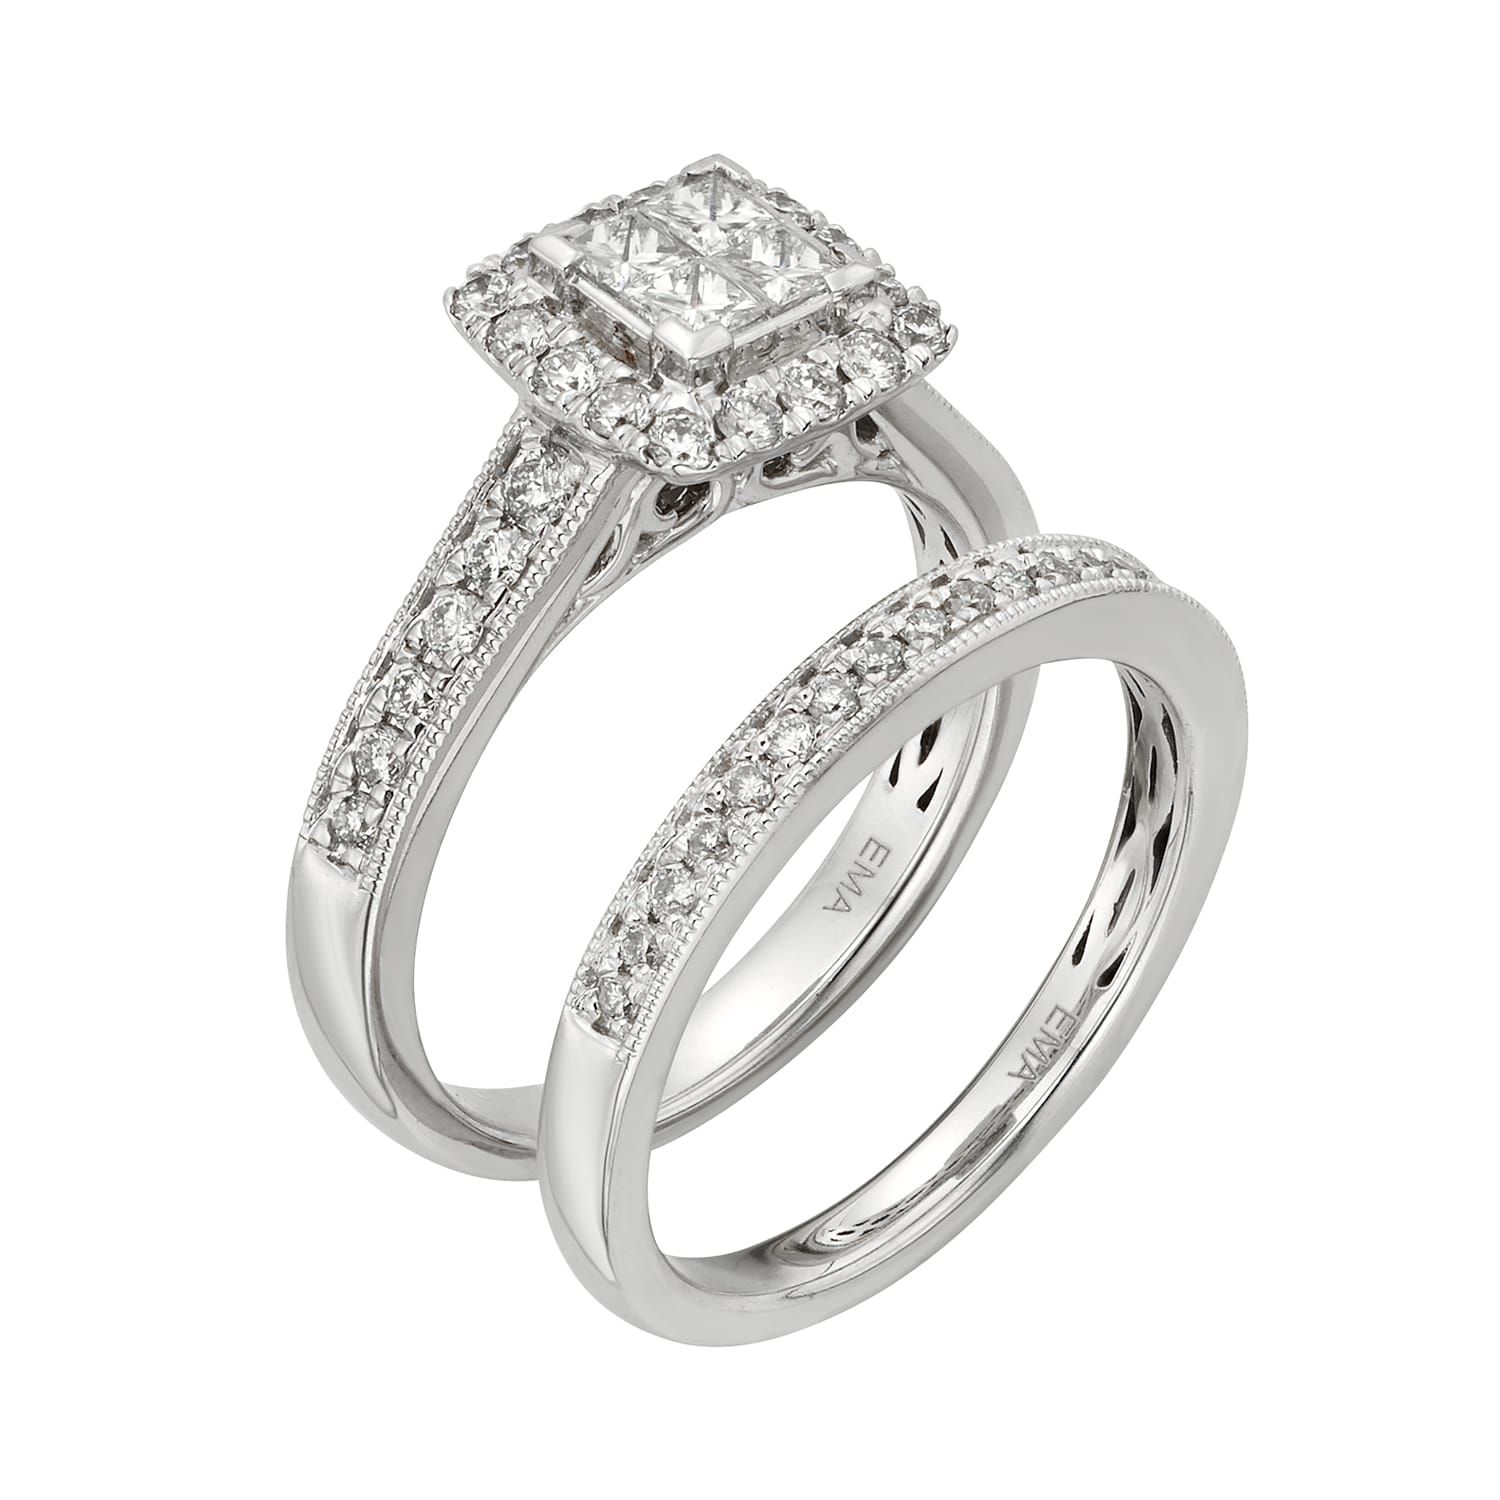 IGL Certified Diamond Square Halo Engagement Ring Set in 14k White Gold (1 Carat T.W.) #Affiliate #Square, #Halo, #Engagement, #IGL